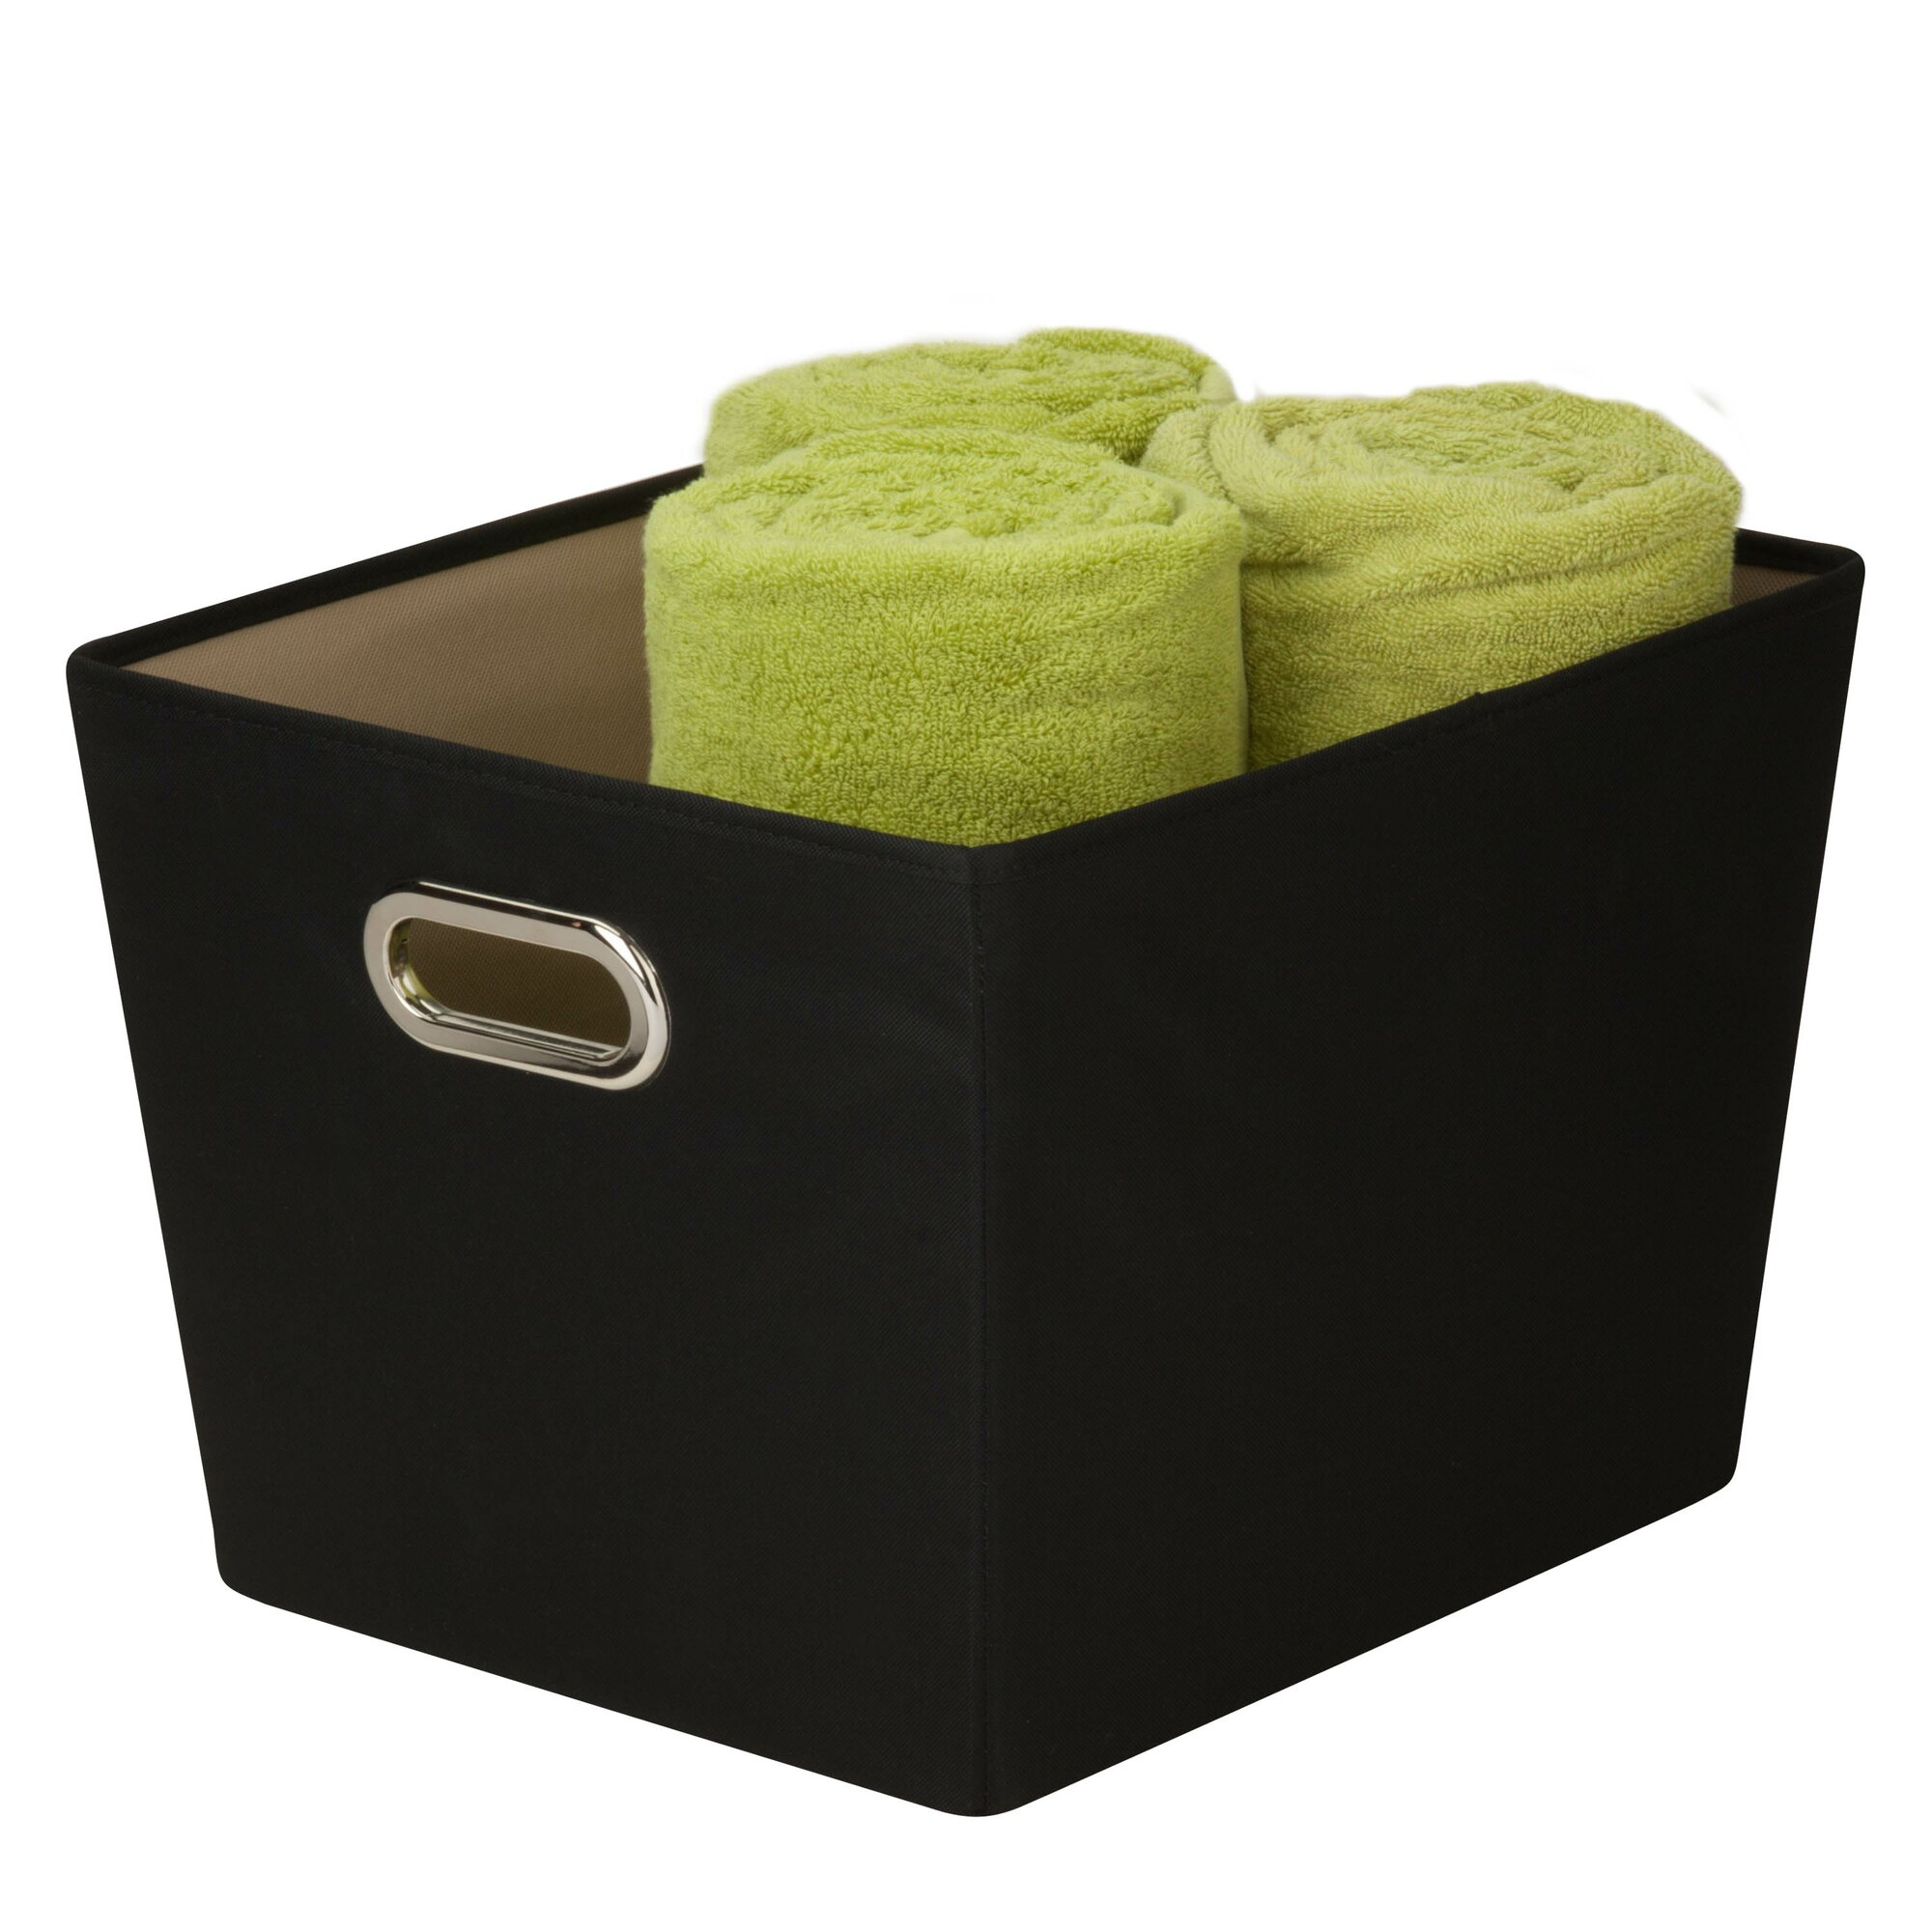 decorative storage bin with handle - Decorative Storage Bins